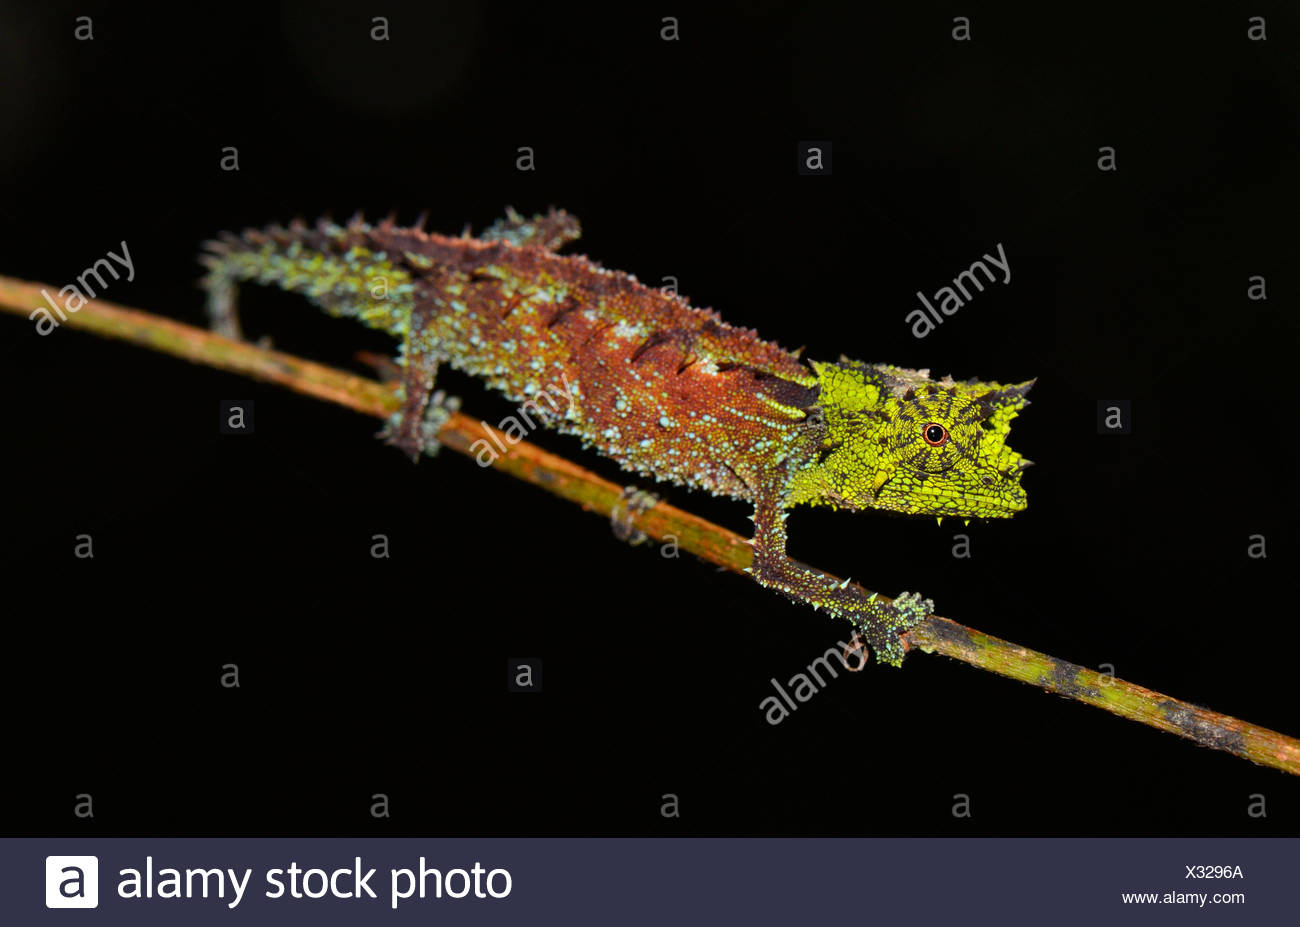 Male leaf chameleon (Brookesia vadoni), Marojejy National Park, Northeastern Madagascar - Stock Image